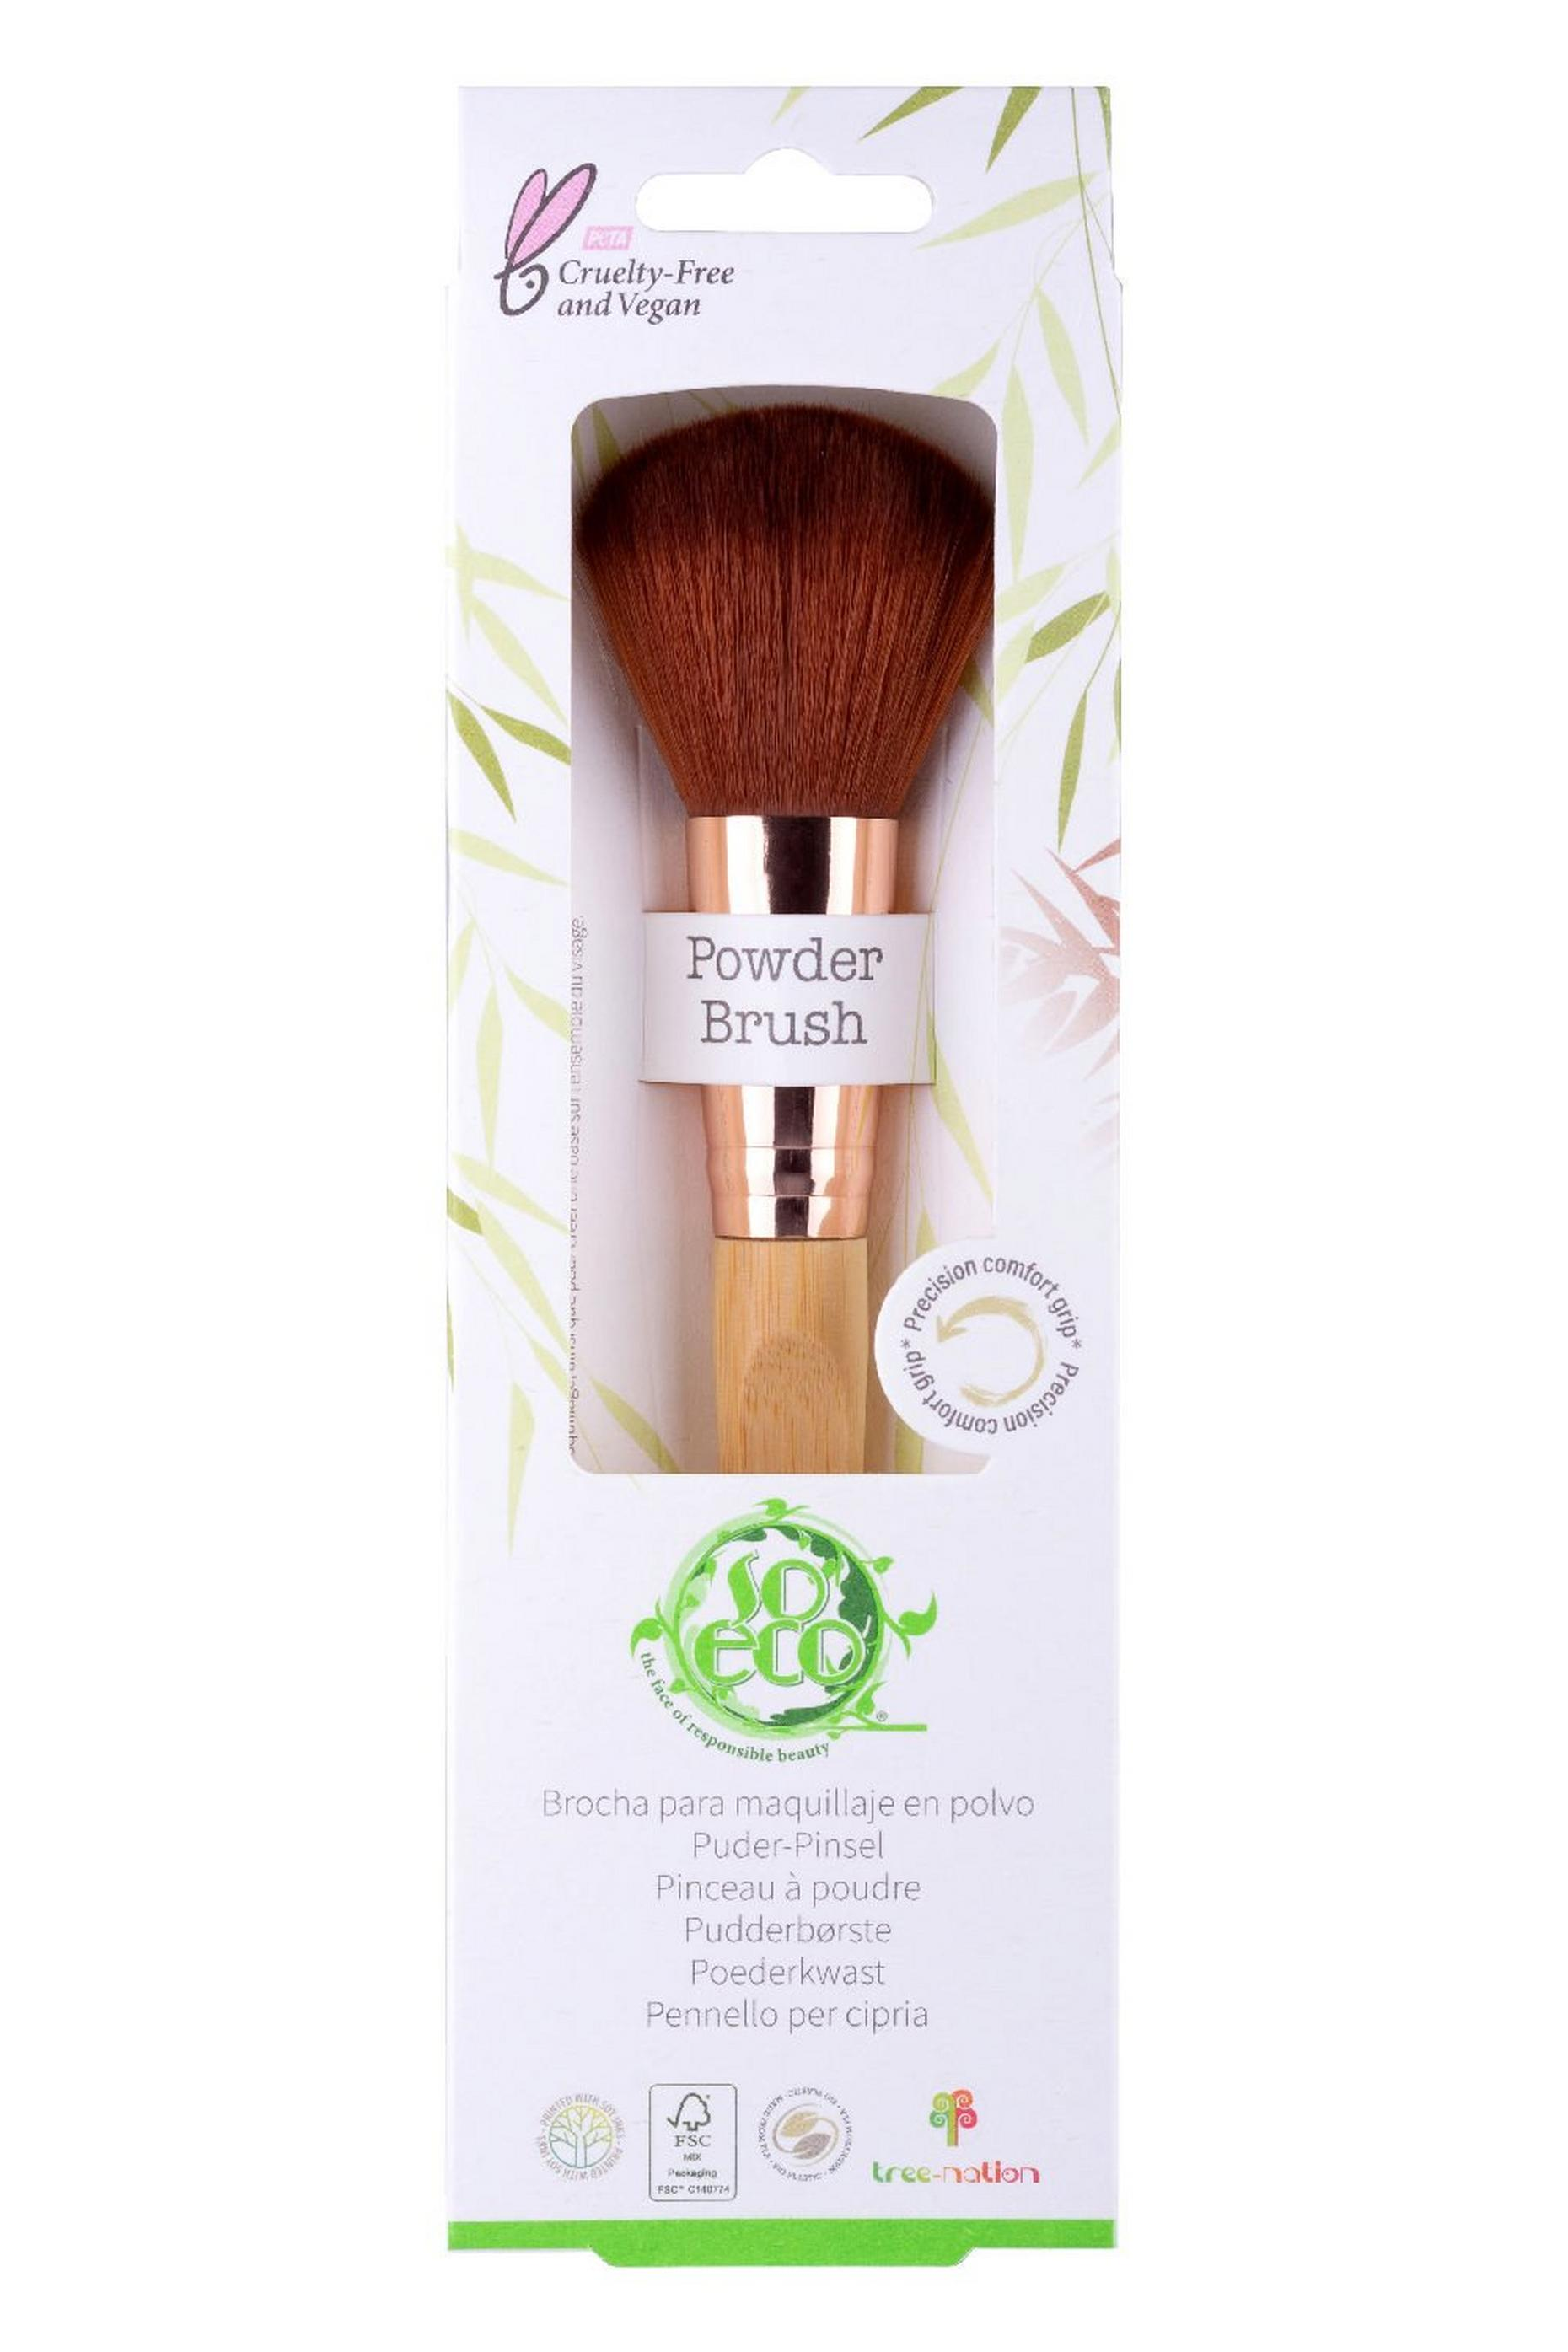 So Eco Powder Make Up Brush